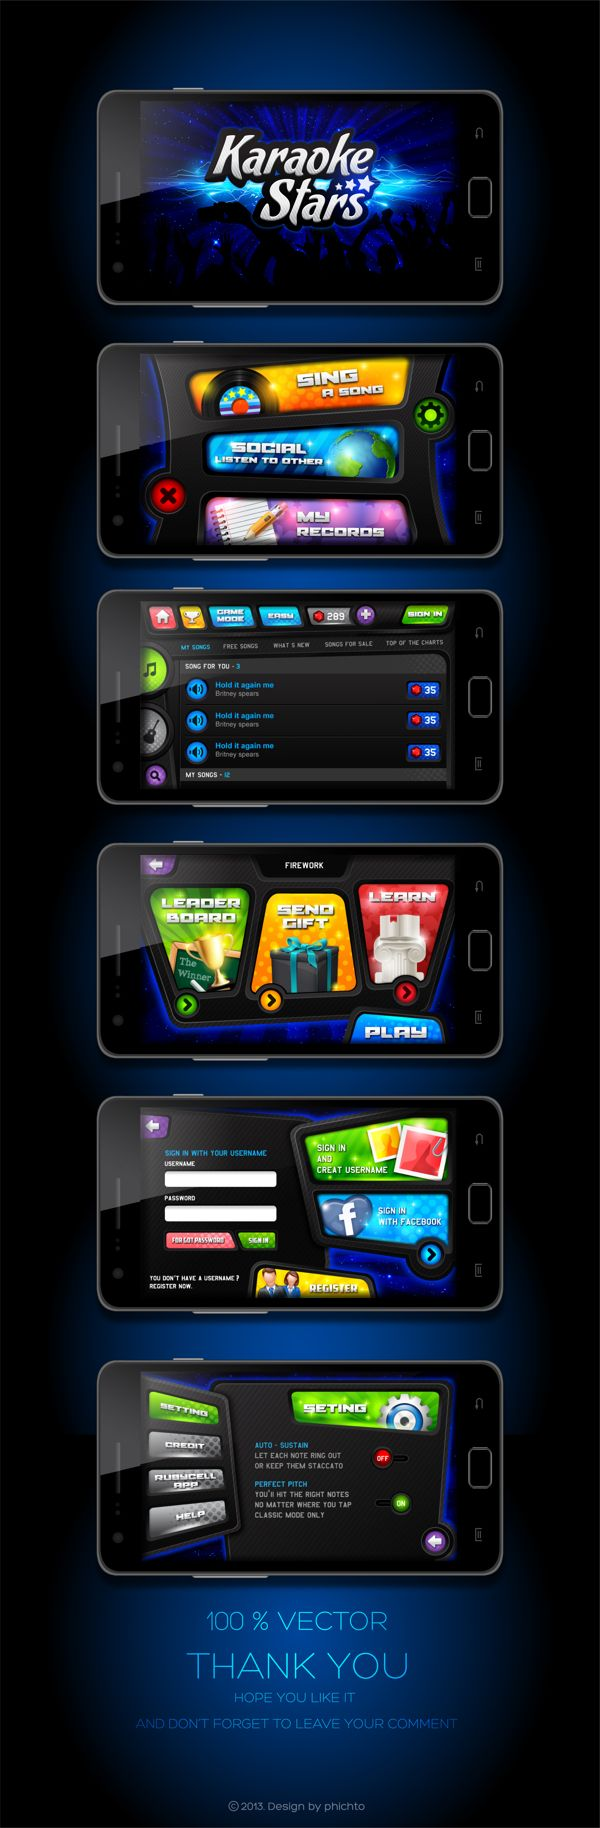 Karaoke Stars - New Game by Phich To, via Behance